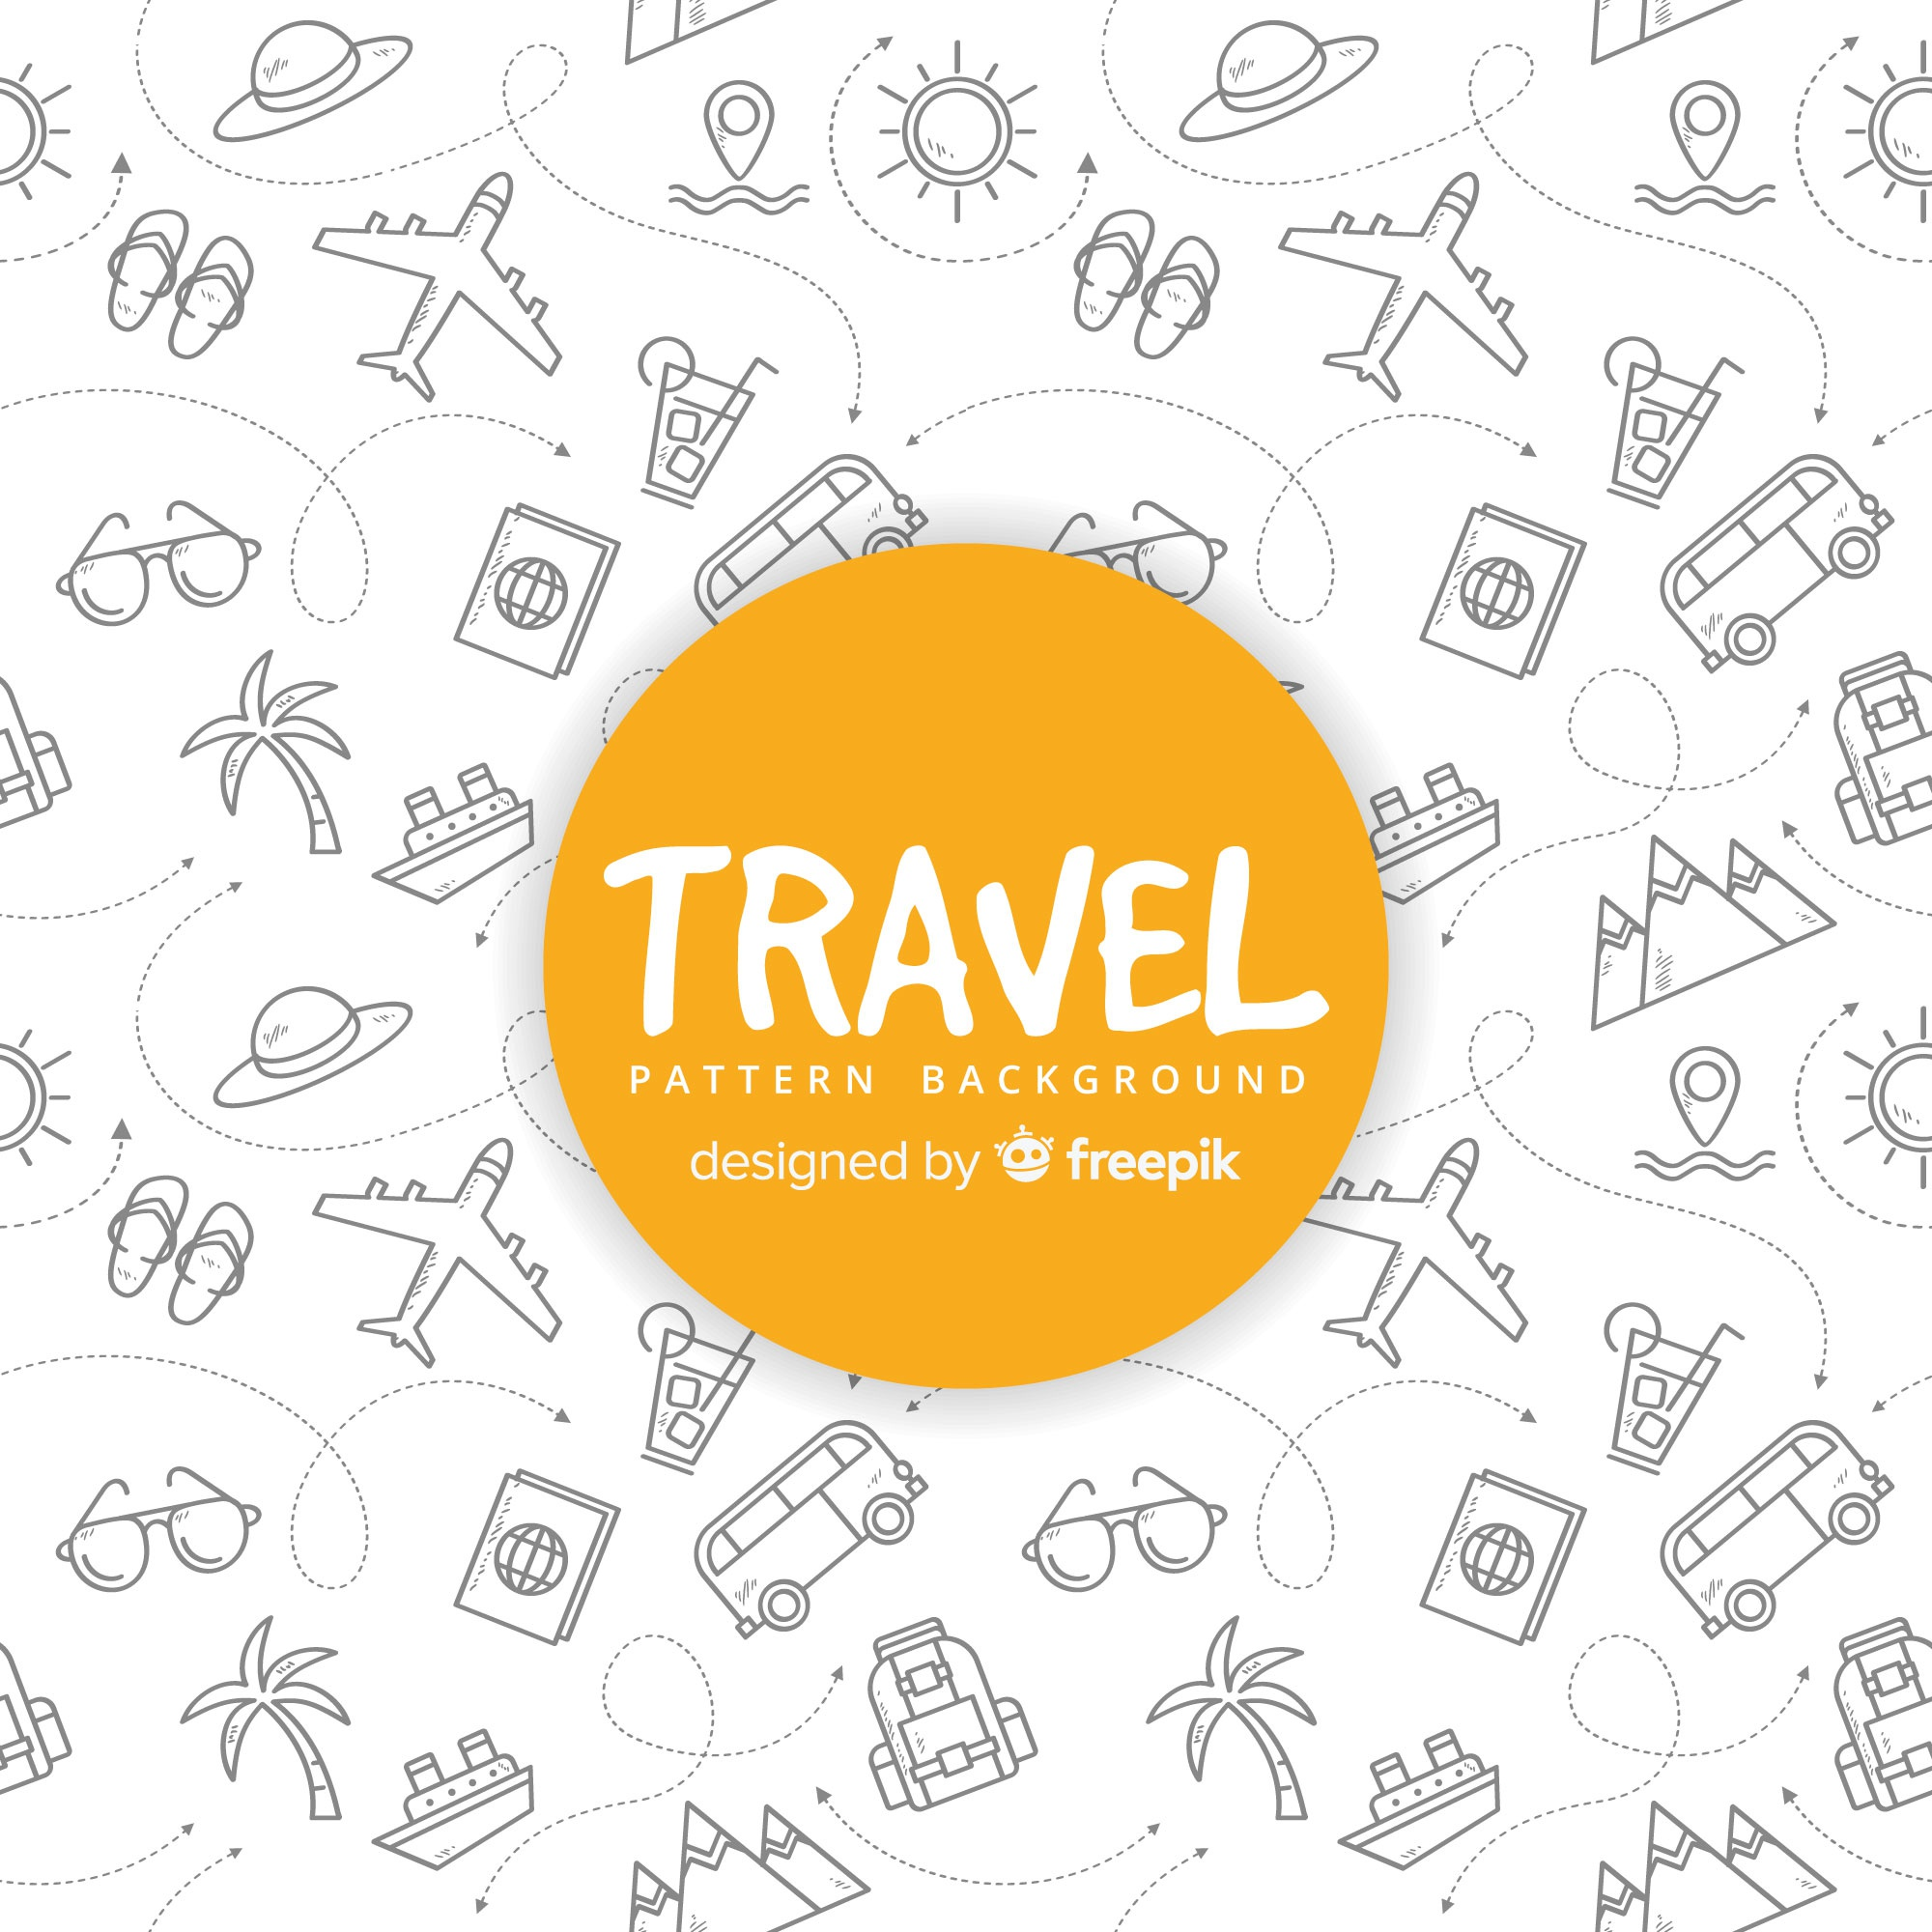 Travel pattern with elements and dash lines